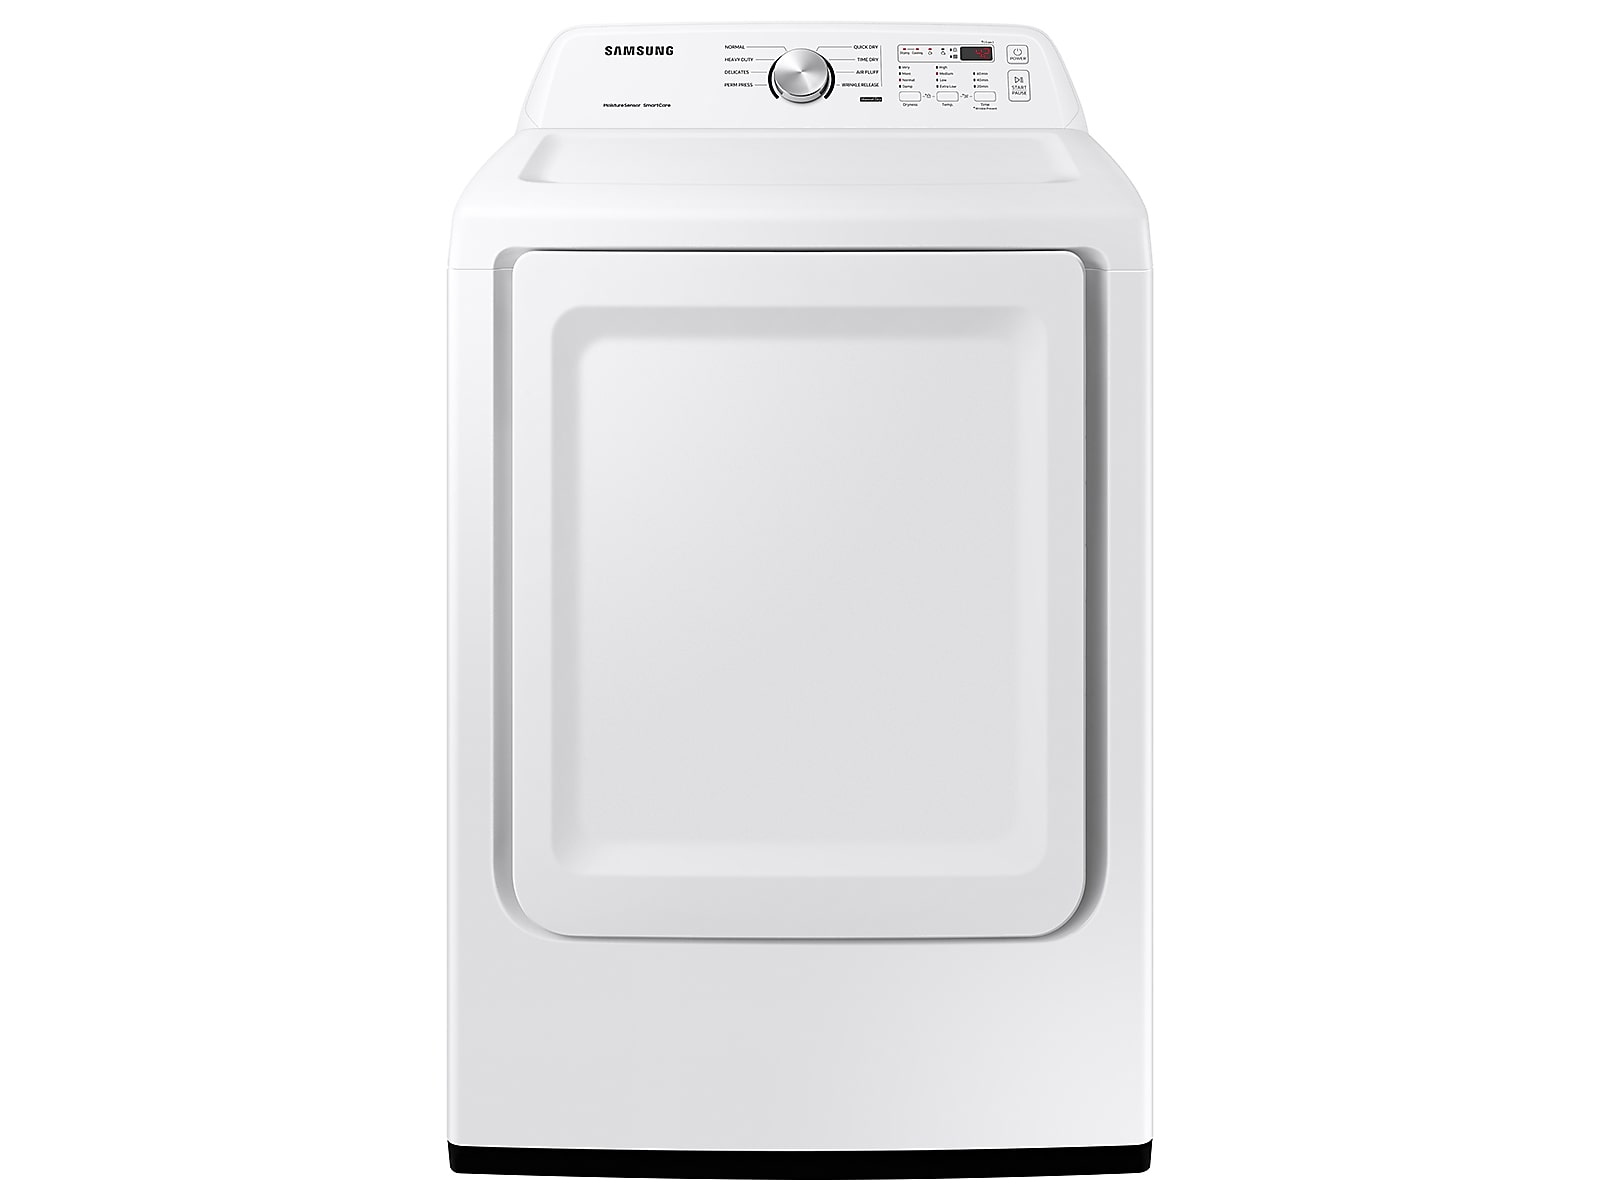 Samsung coupon: Samsung 7.2 cu. ft. Gas Dryer with Sensor Dry in White (DVG45T3200W/A3)